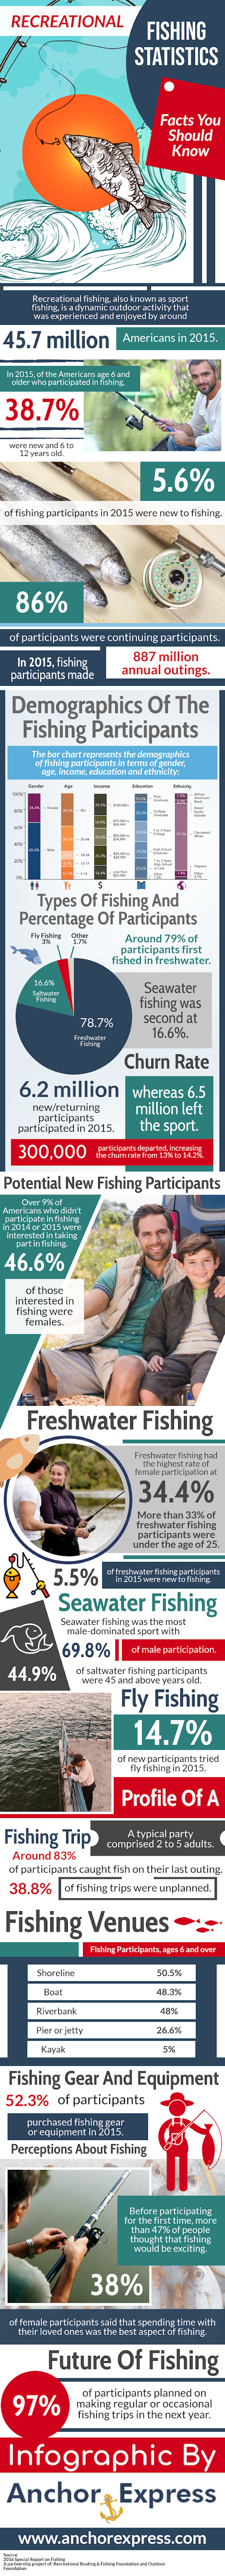 Recreational Fishing Statistics #infographic